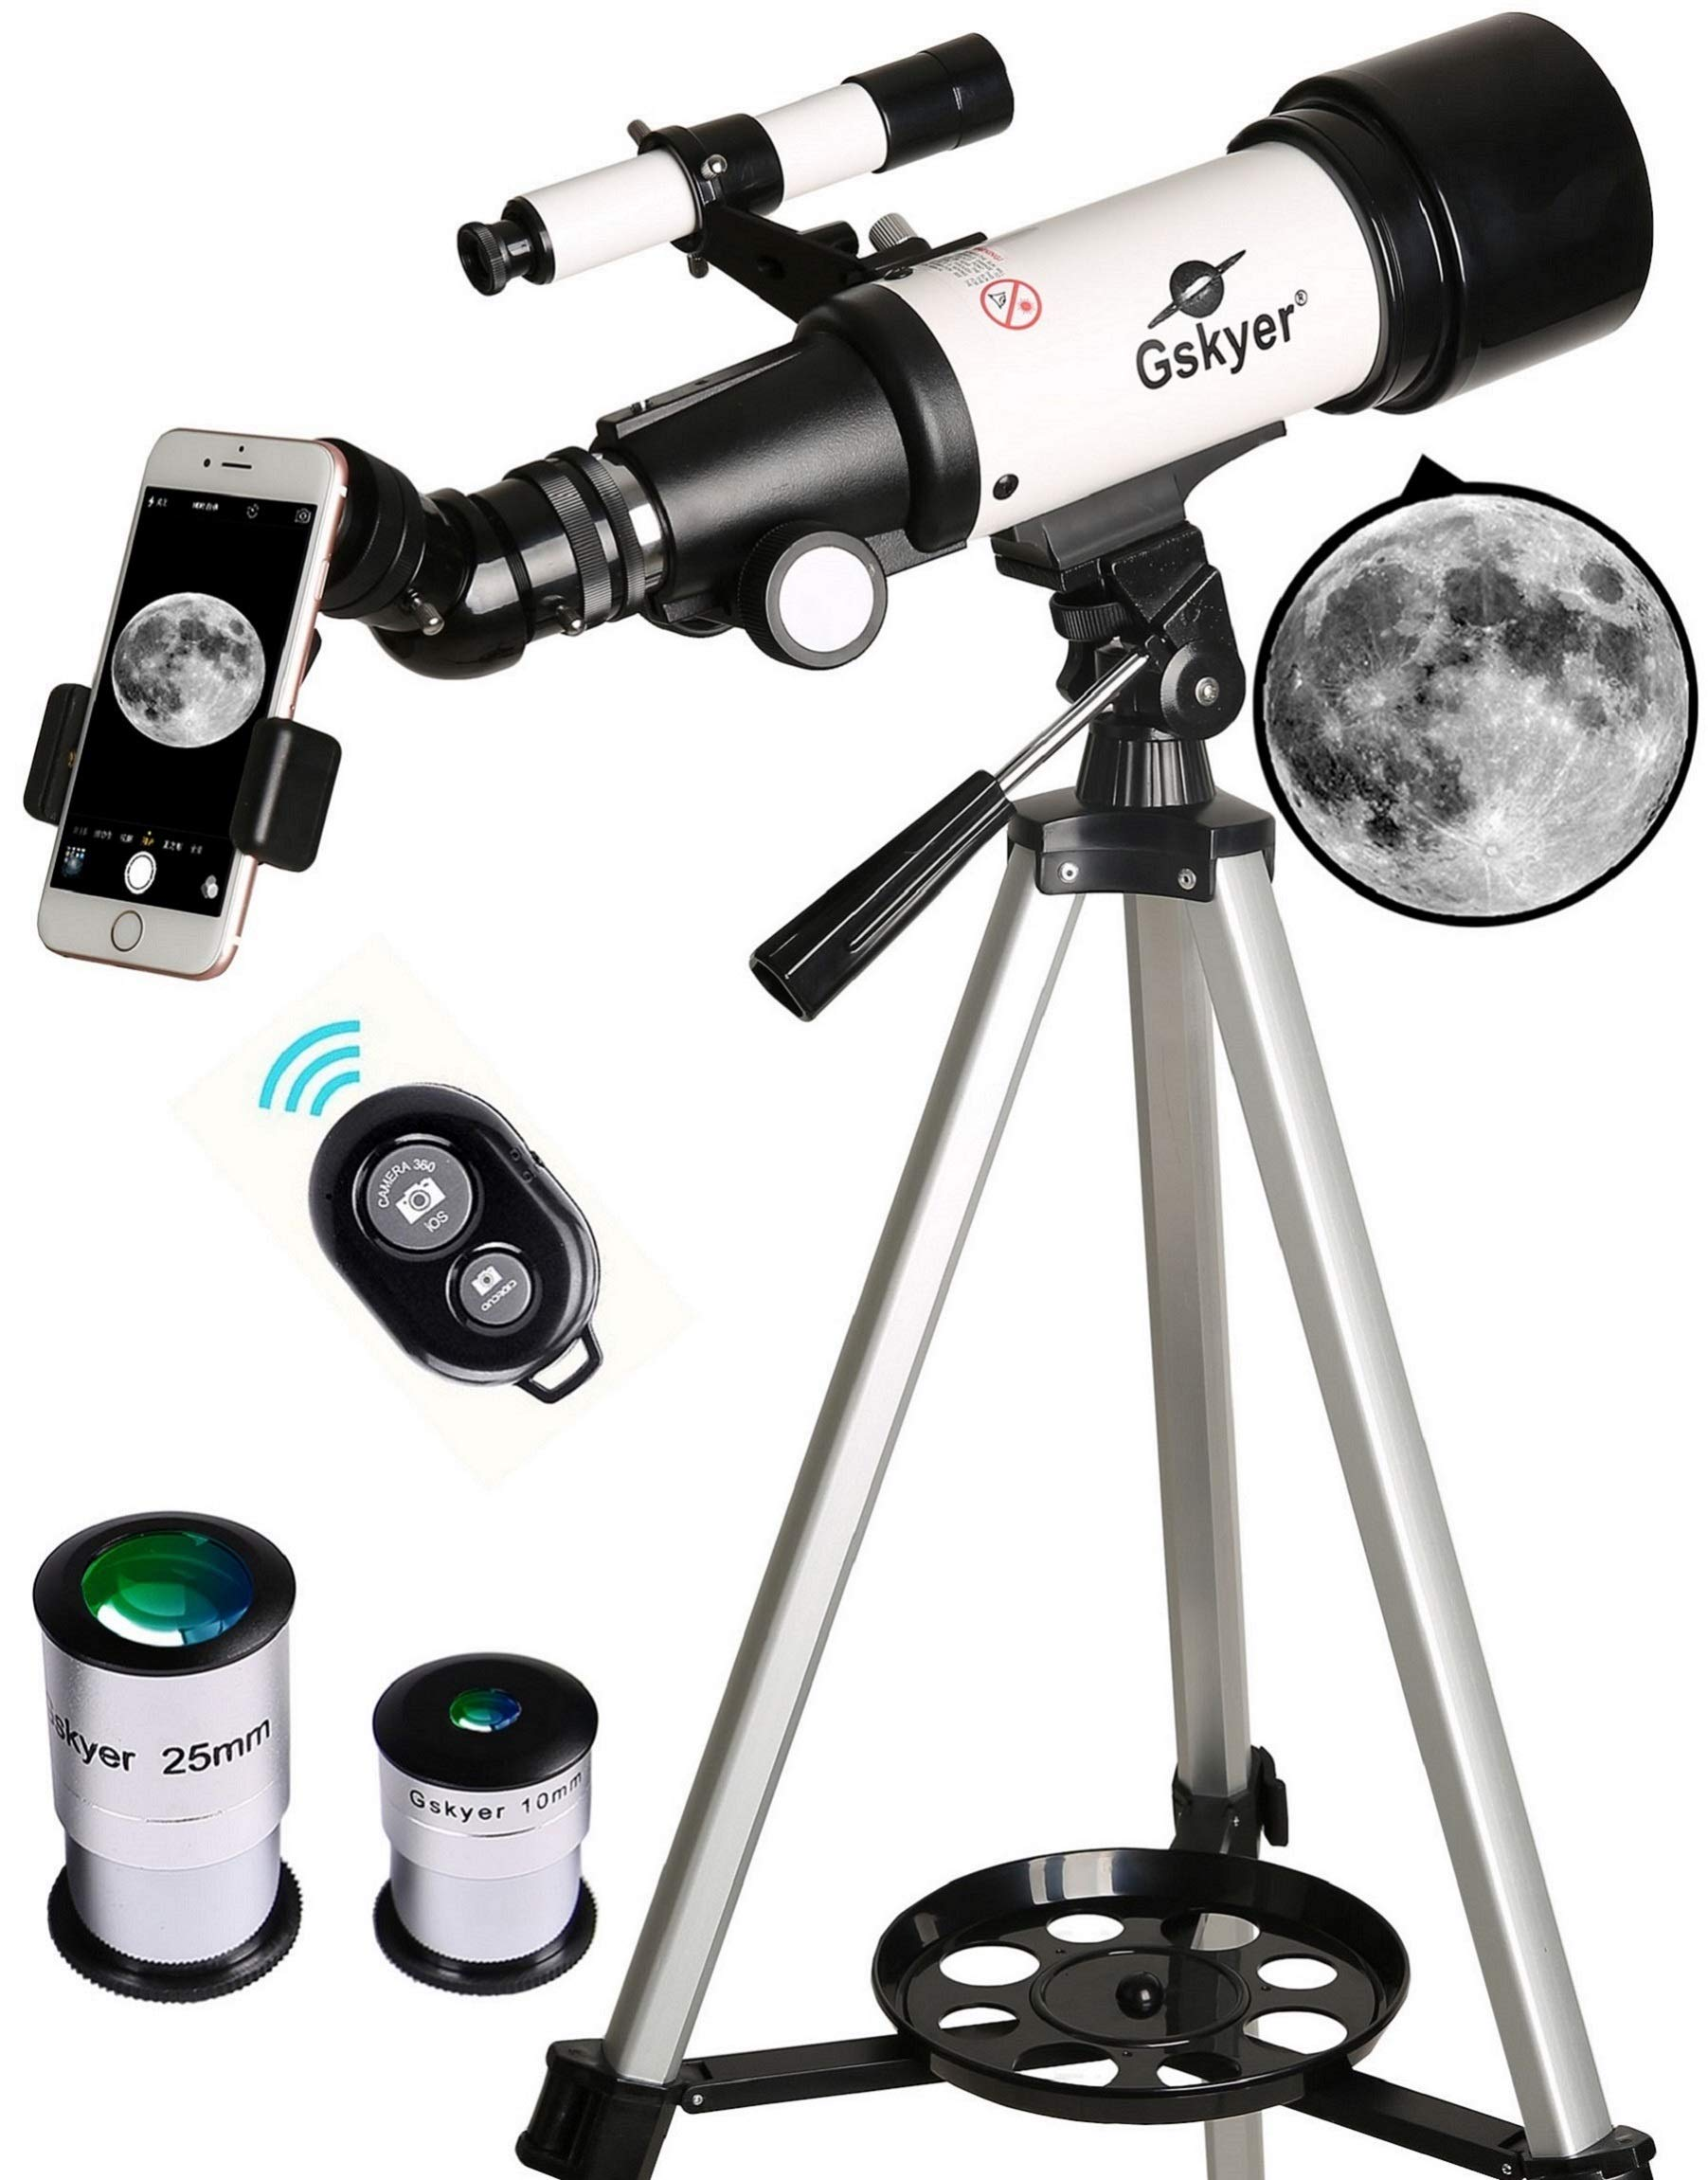 Gskyer Telescope, Travel Scope, 70mm Aperture 400mm AZ Mount Astronomical Refractor Telescope for Kids Beginners - Portable Travel Telescope with Carry Bag, Smartphone Adapter and Wireless Remote by Gskyer